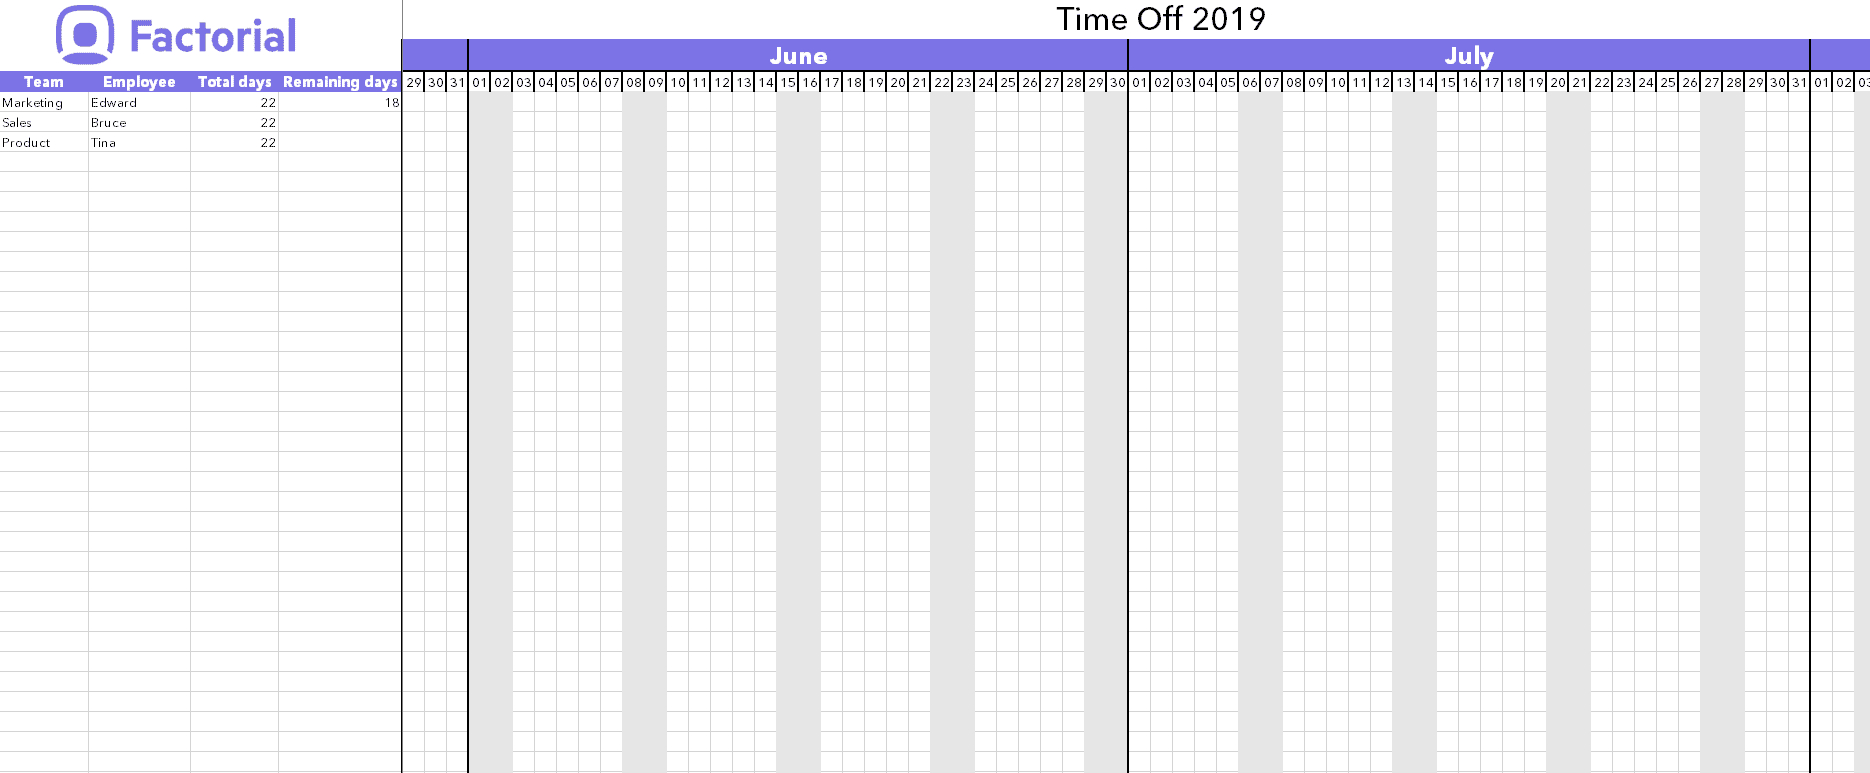 Manage Time Off Requests W Free Template | Factorial inside Employee Vacation Calendar Template